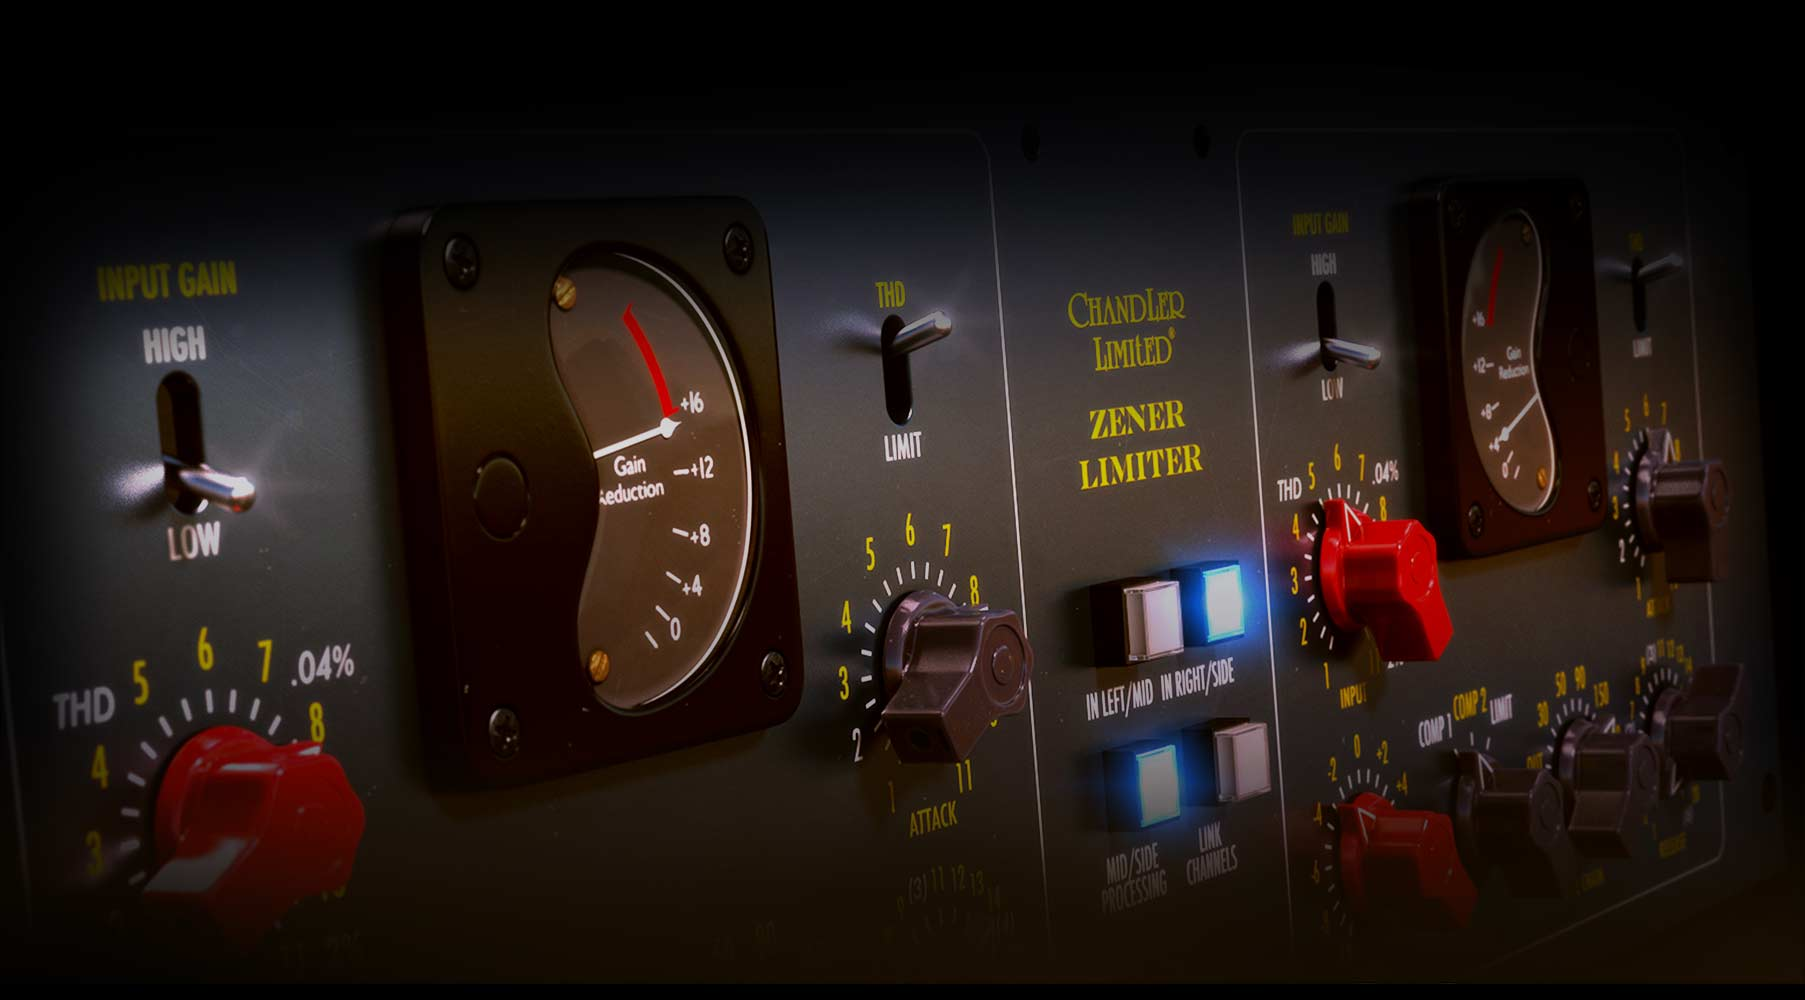 Chandler Limited® Zener Limiter®